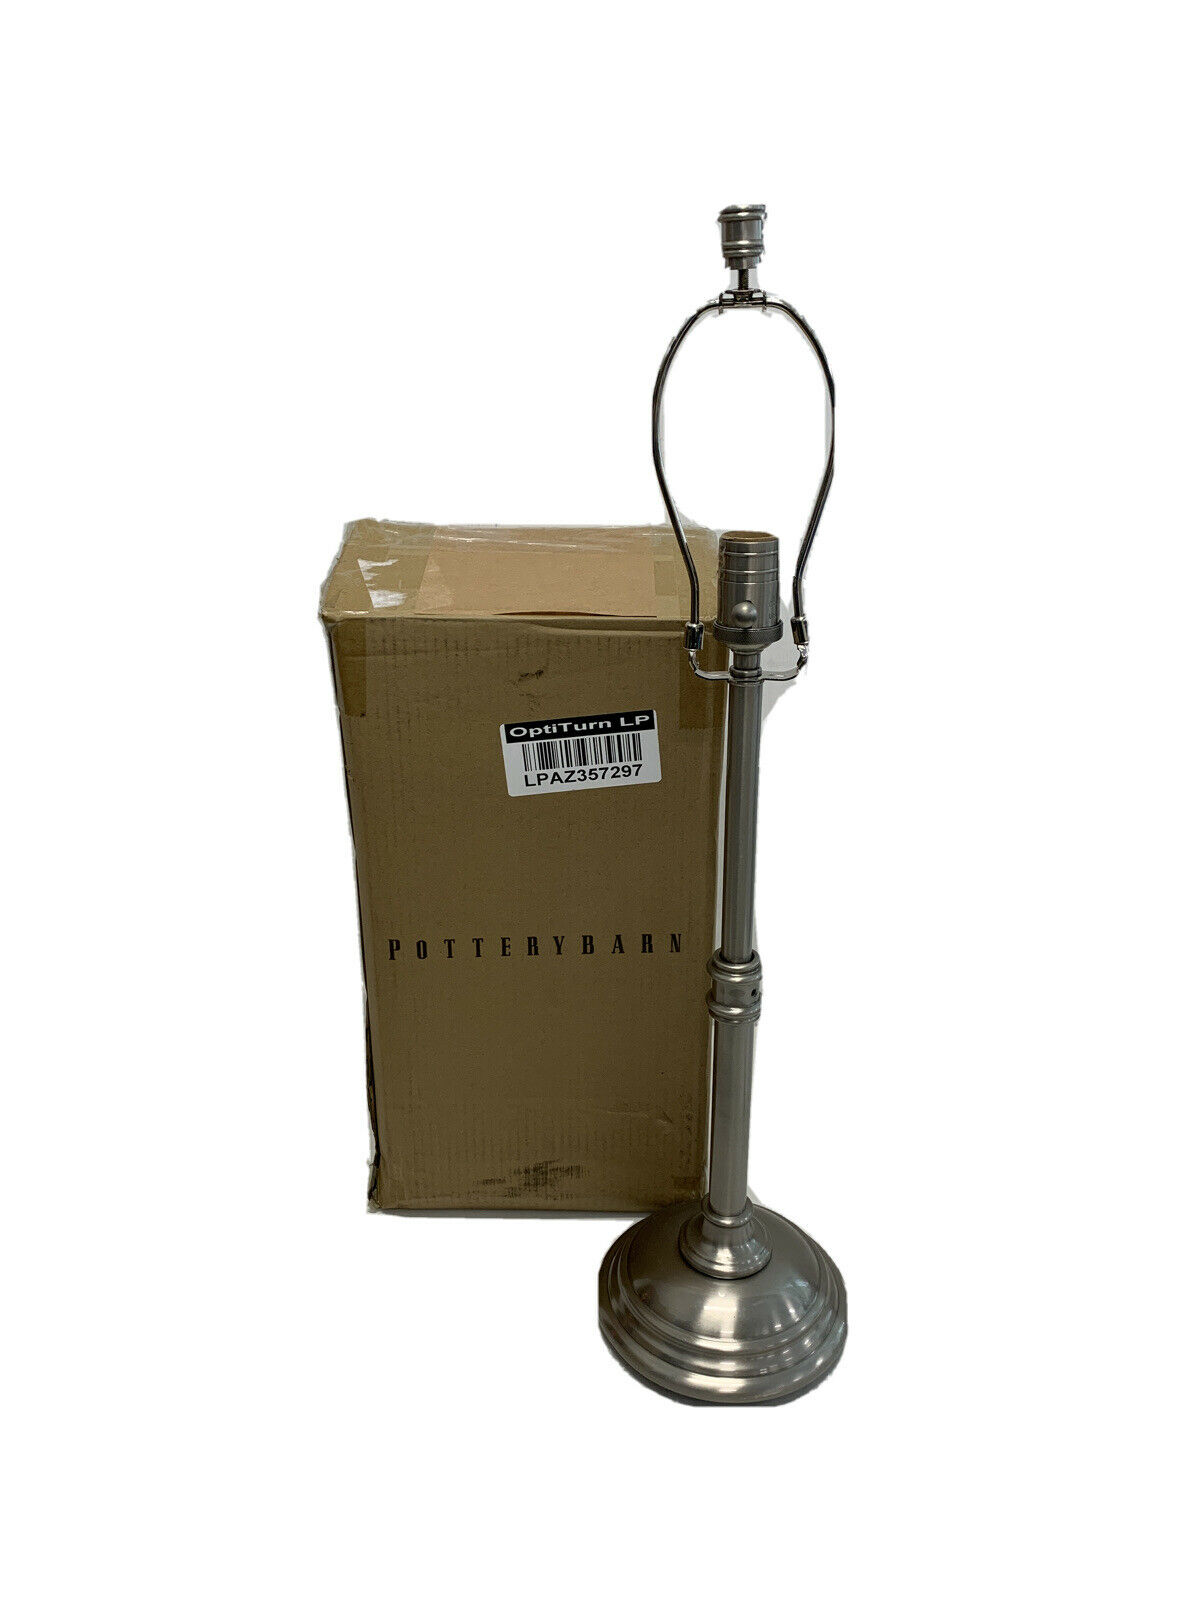 Pottery Barn Photographer S Tripod Floor Lamp Antique Nickel Finish For Sale Online Ebay